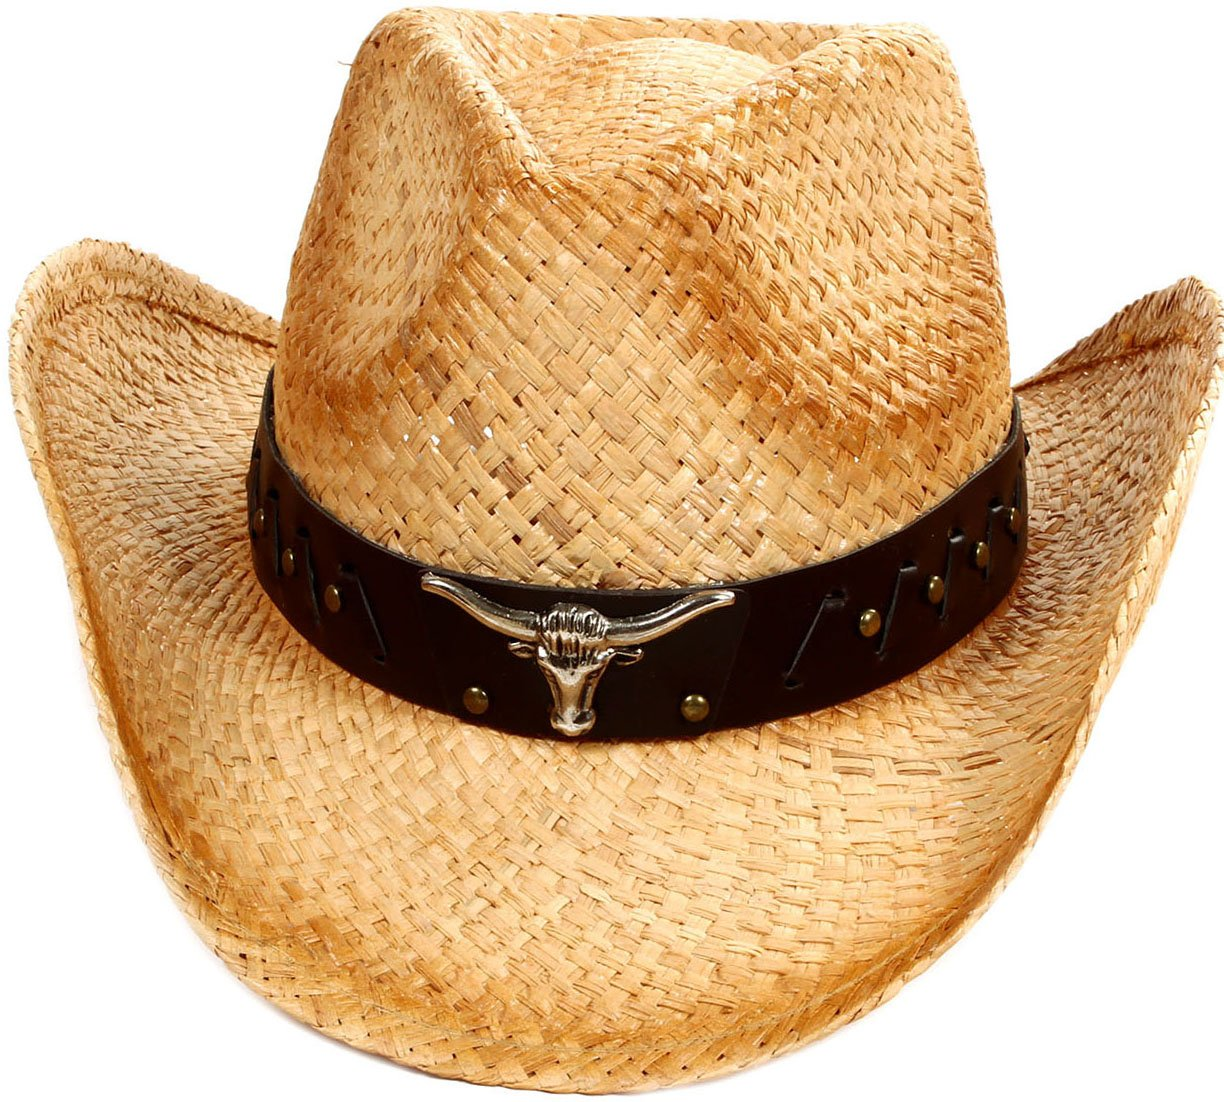 YoungLove Men and Women Costume Straw Cowboy Hat with Decor,Nature_Bull by YoungLove (Image #2)